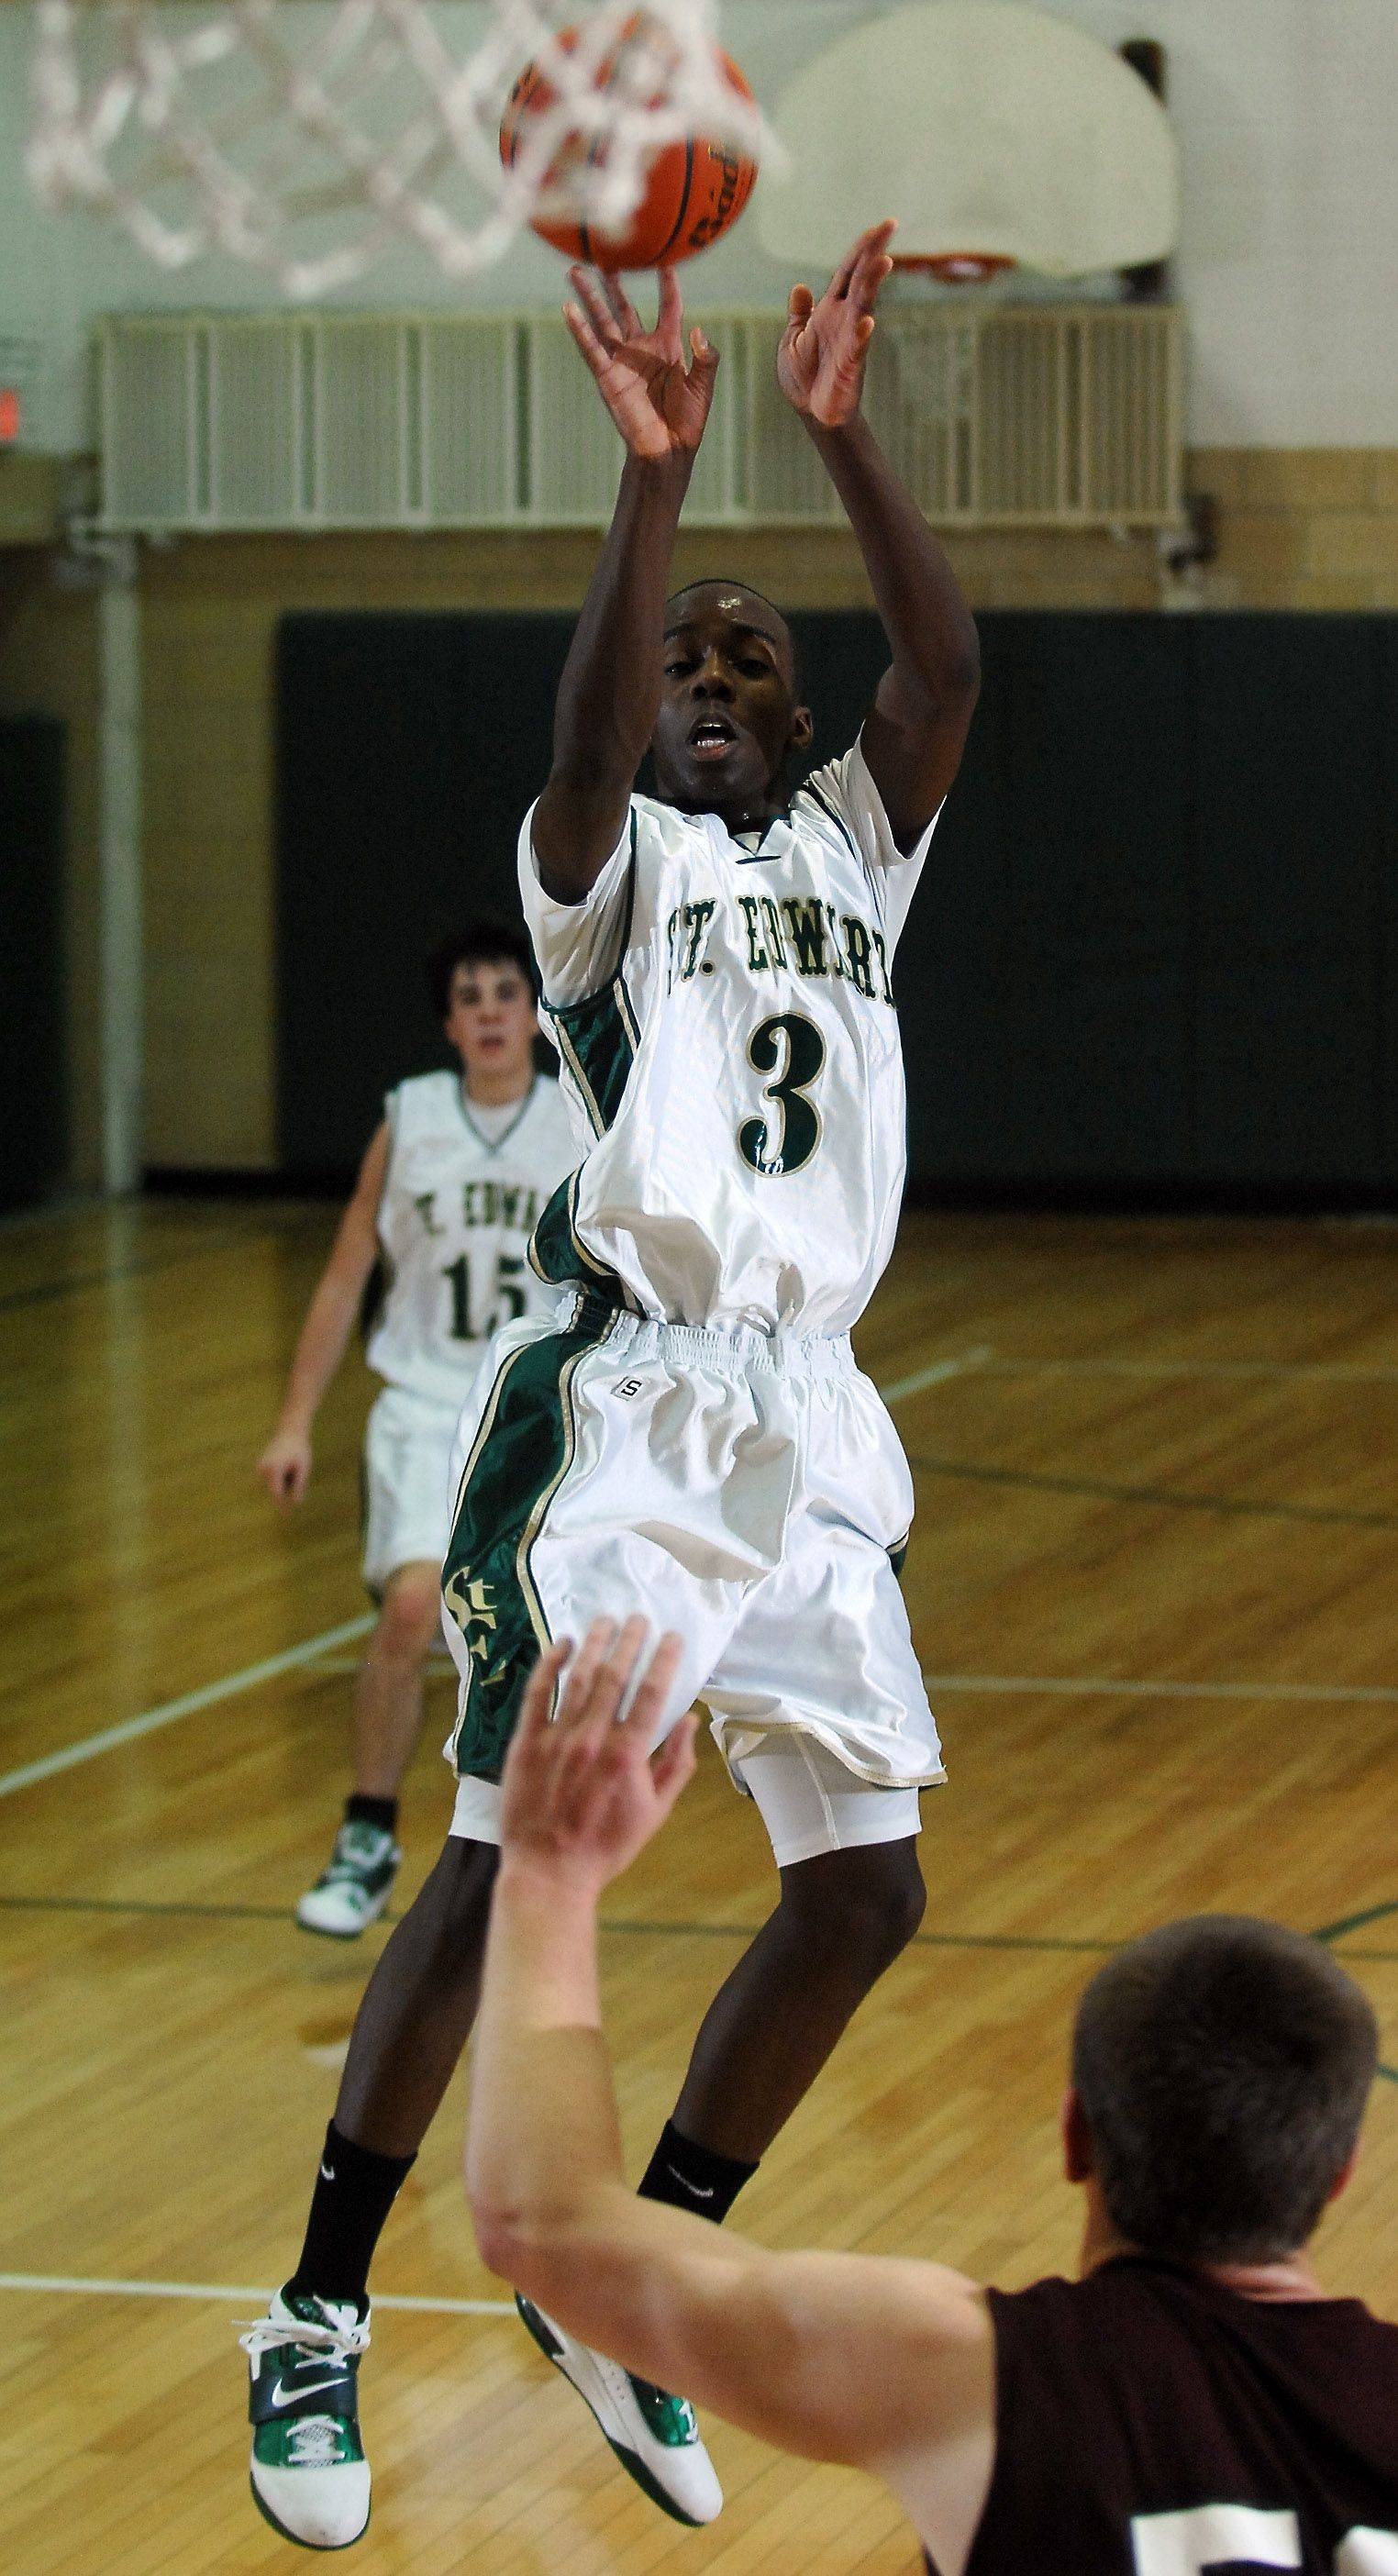 Images from the Wheaton Academy vs. St. Edward boys basketball game Friday, December 17, 2010.